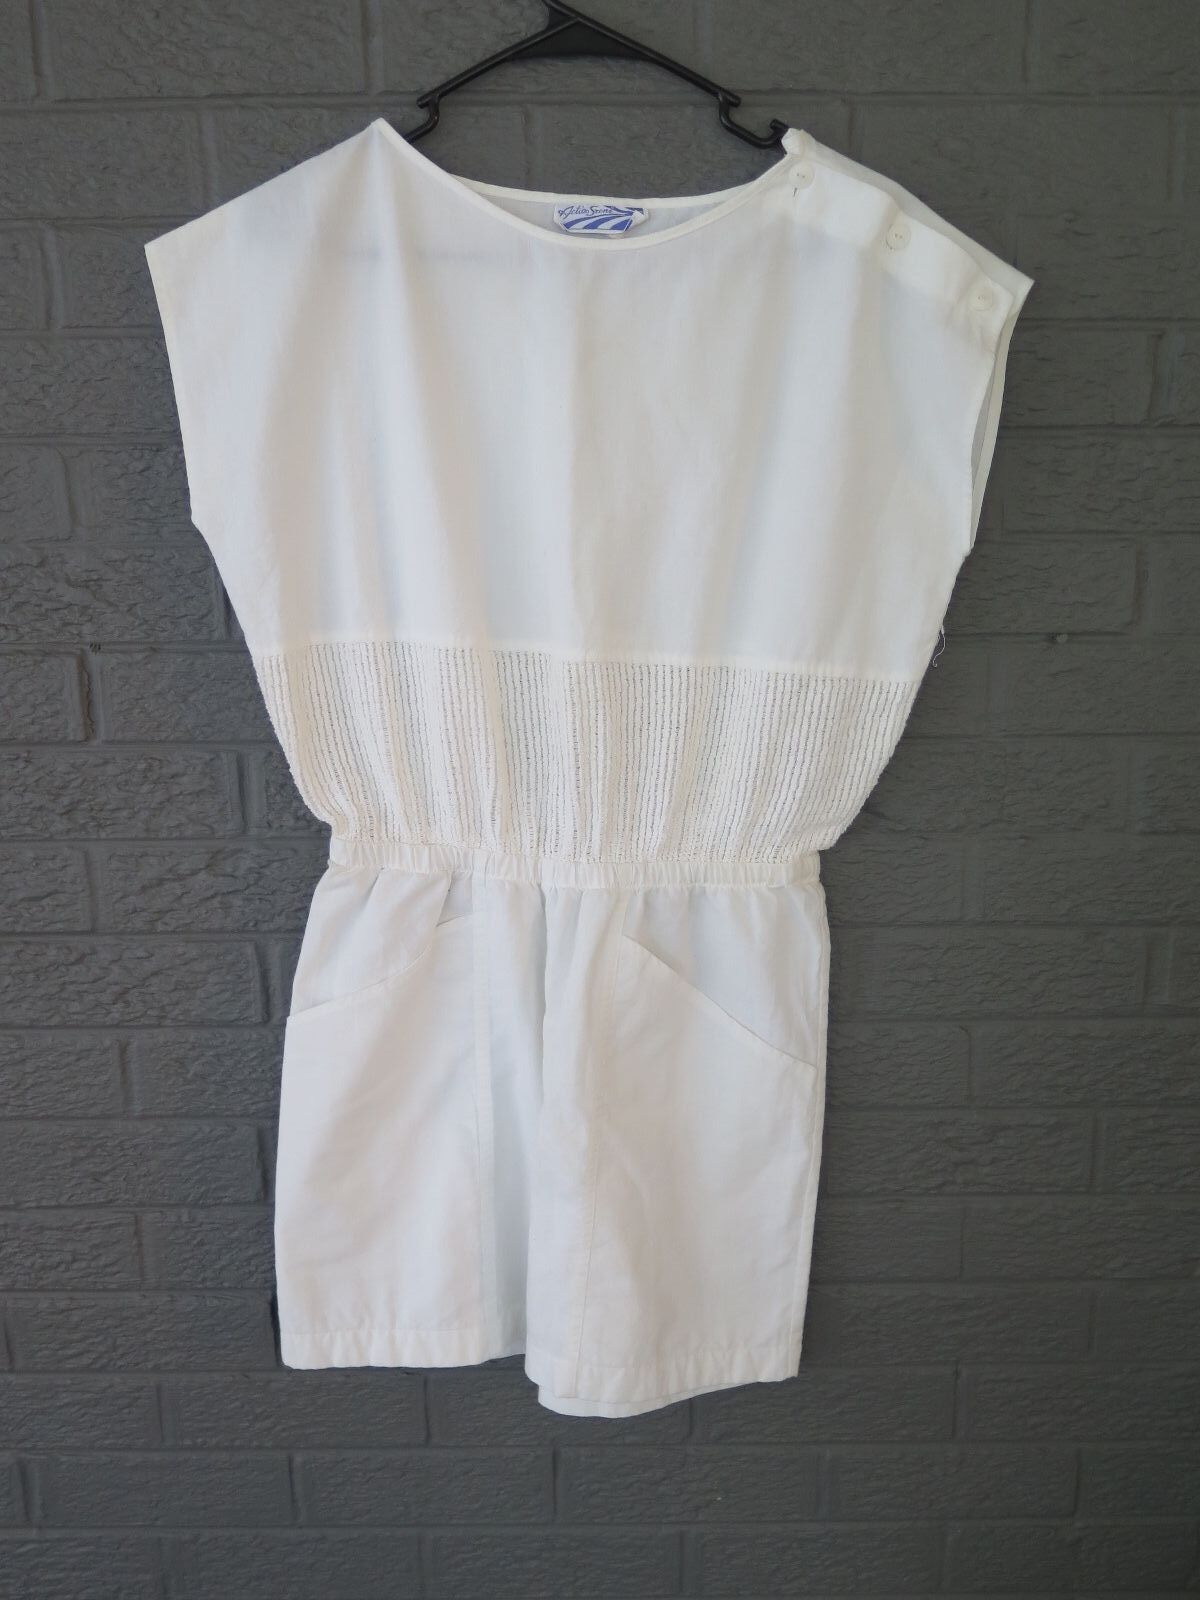 VTG 1980S WHITE OCEAN SCENE SHORT ROMPER OFF SHOULDER BUTTON SIZE SMALL S